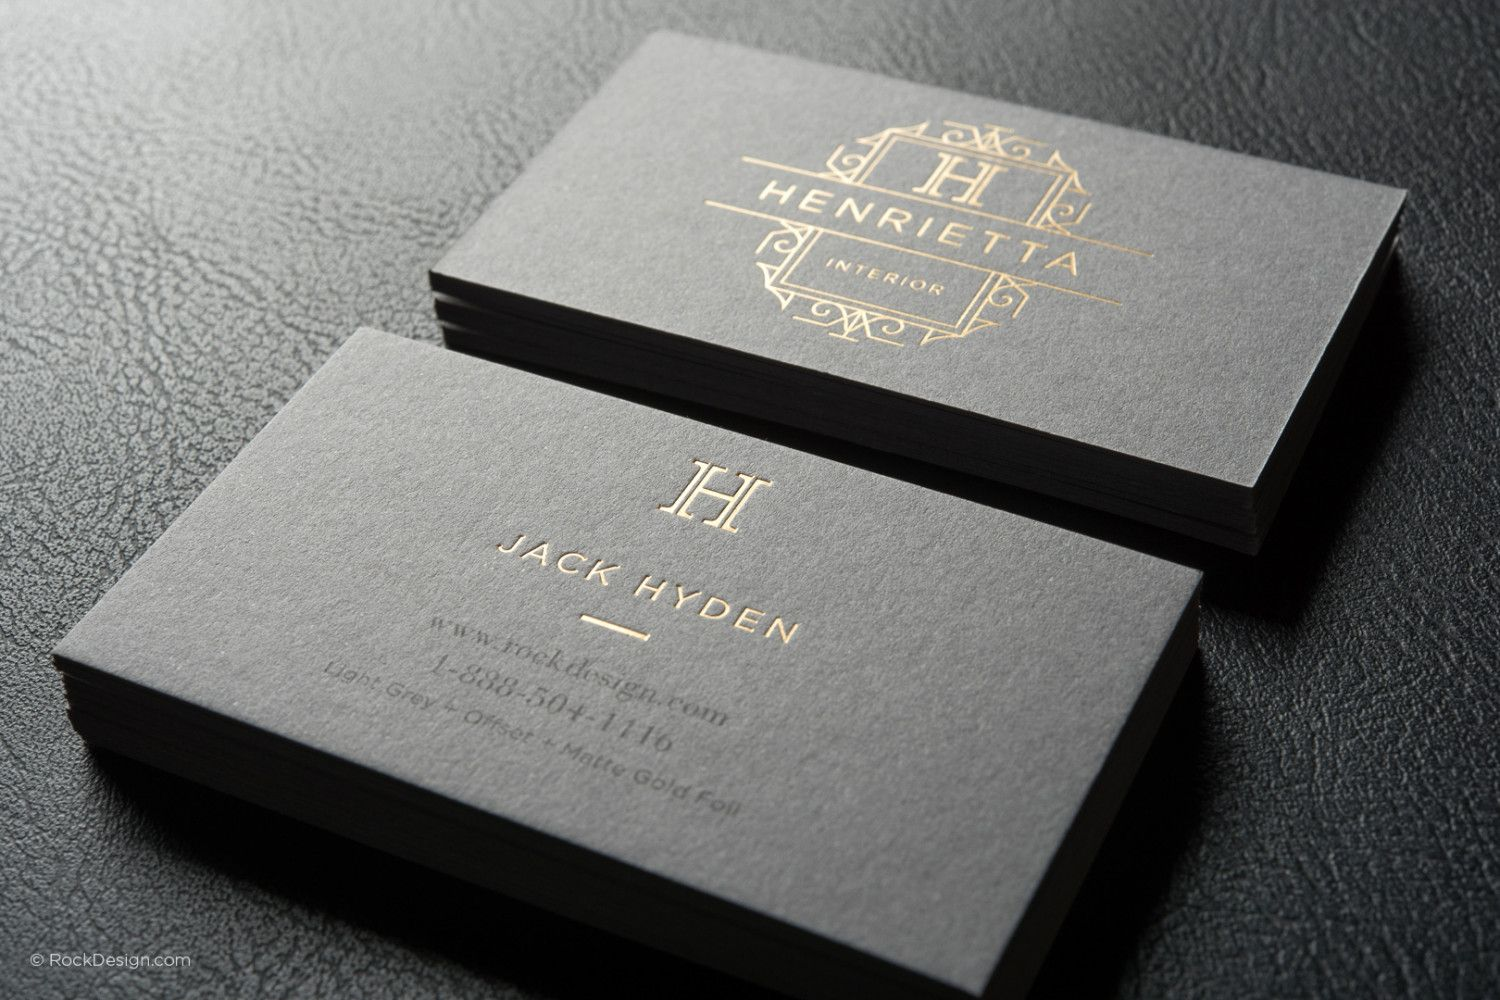 Free vintage business card templates rockdesign law firm free vintage business card templates rockdesign flashek Gallery